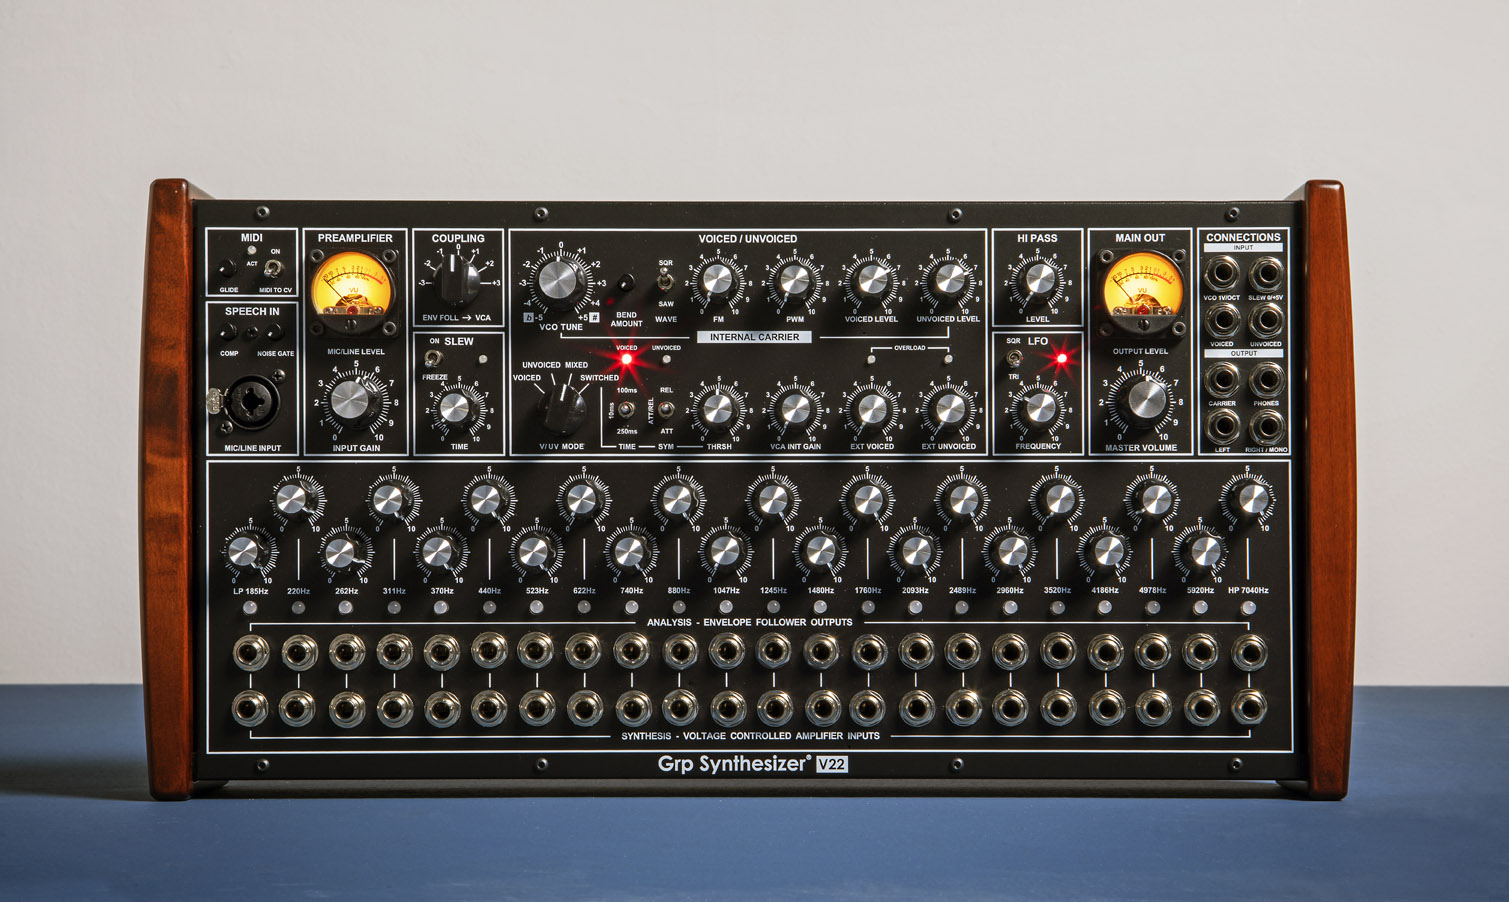 Grp Synthesizer V22